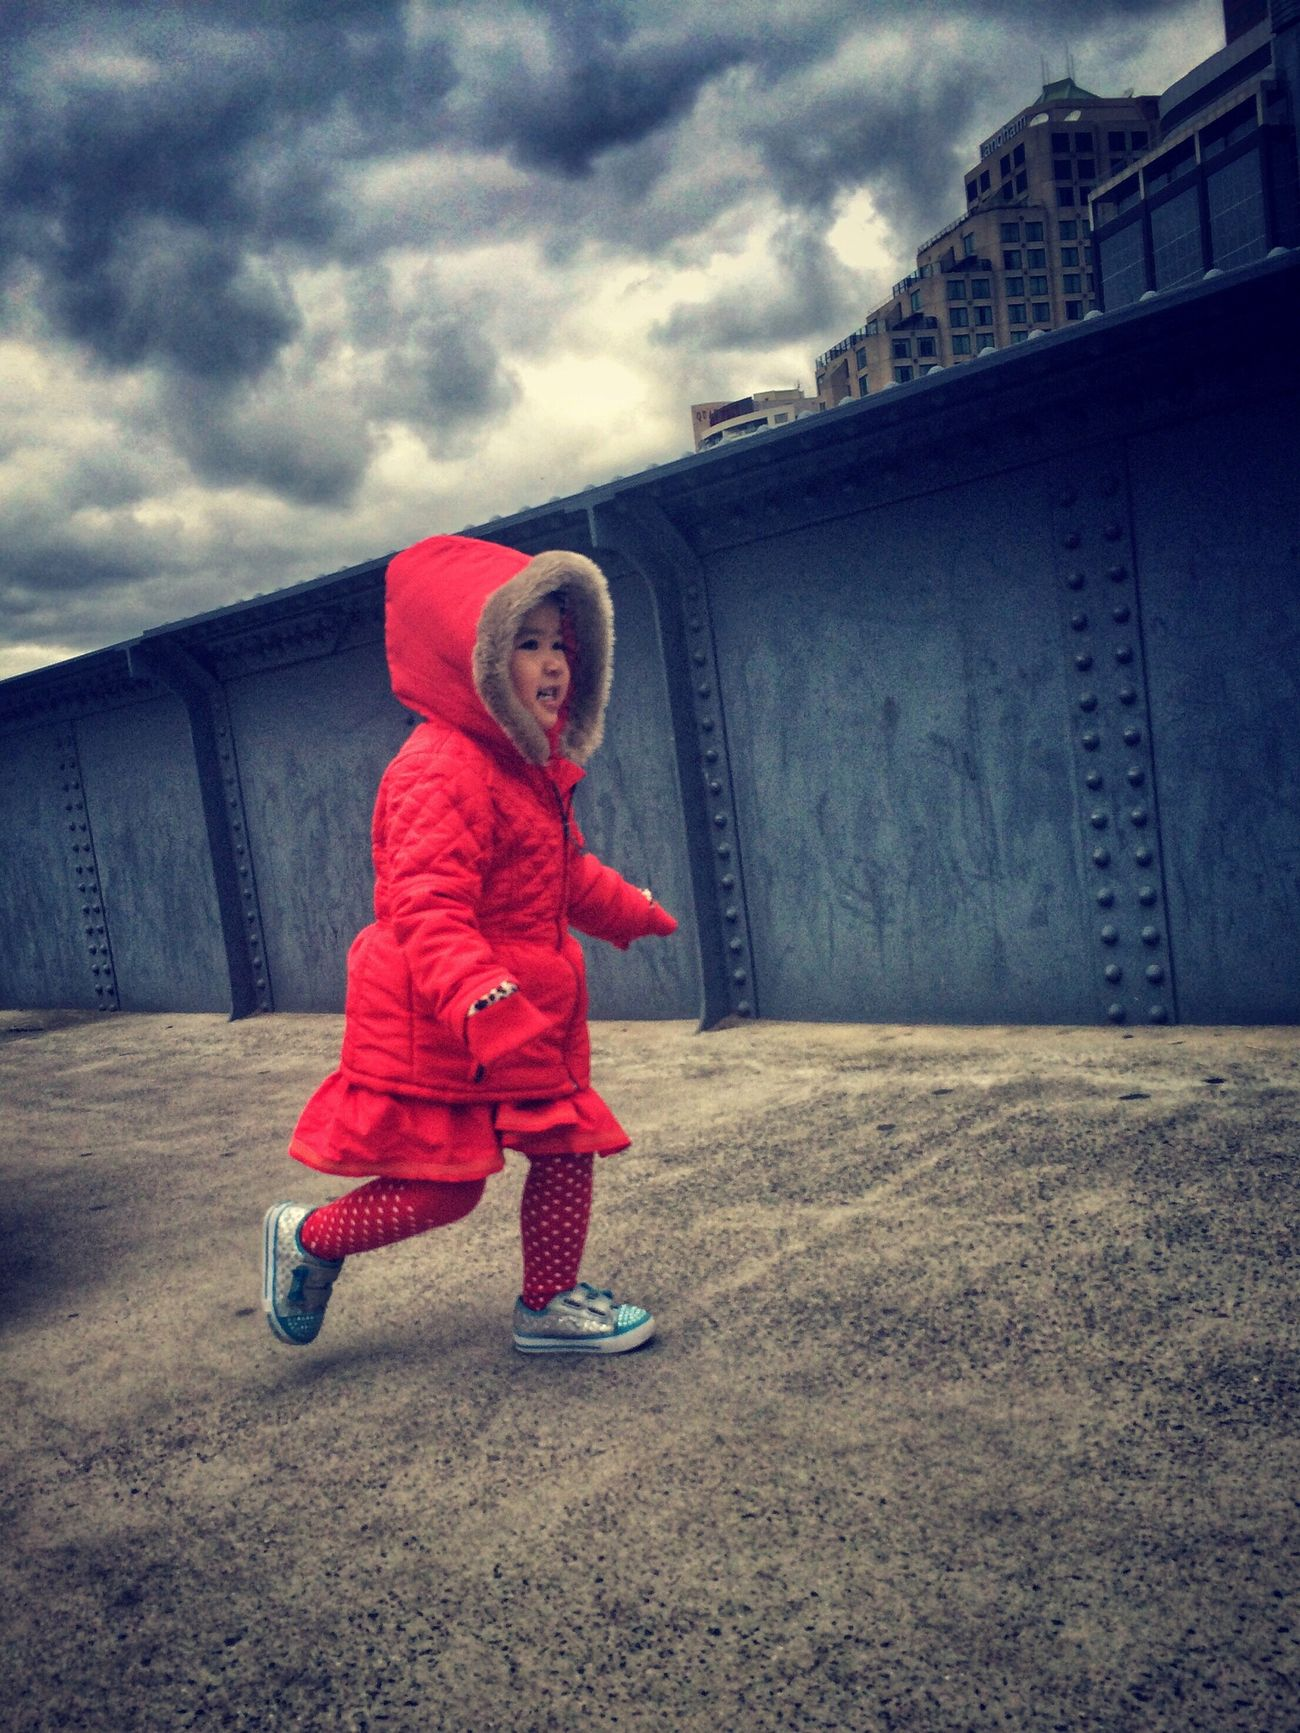 Red Riding Hood // Sandridge Bridge // iP5s RePicture Femininity Street Photography Candid